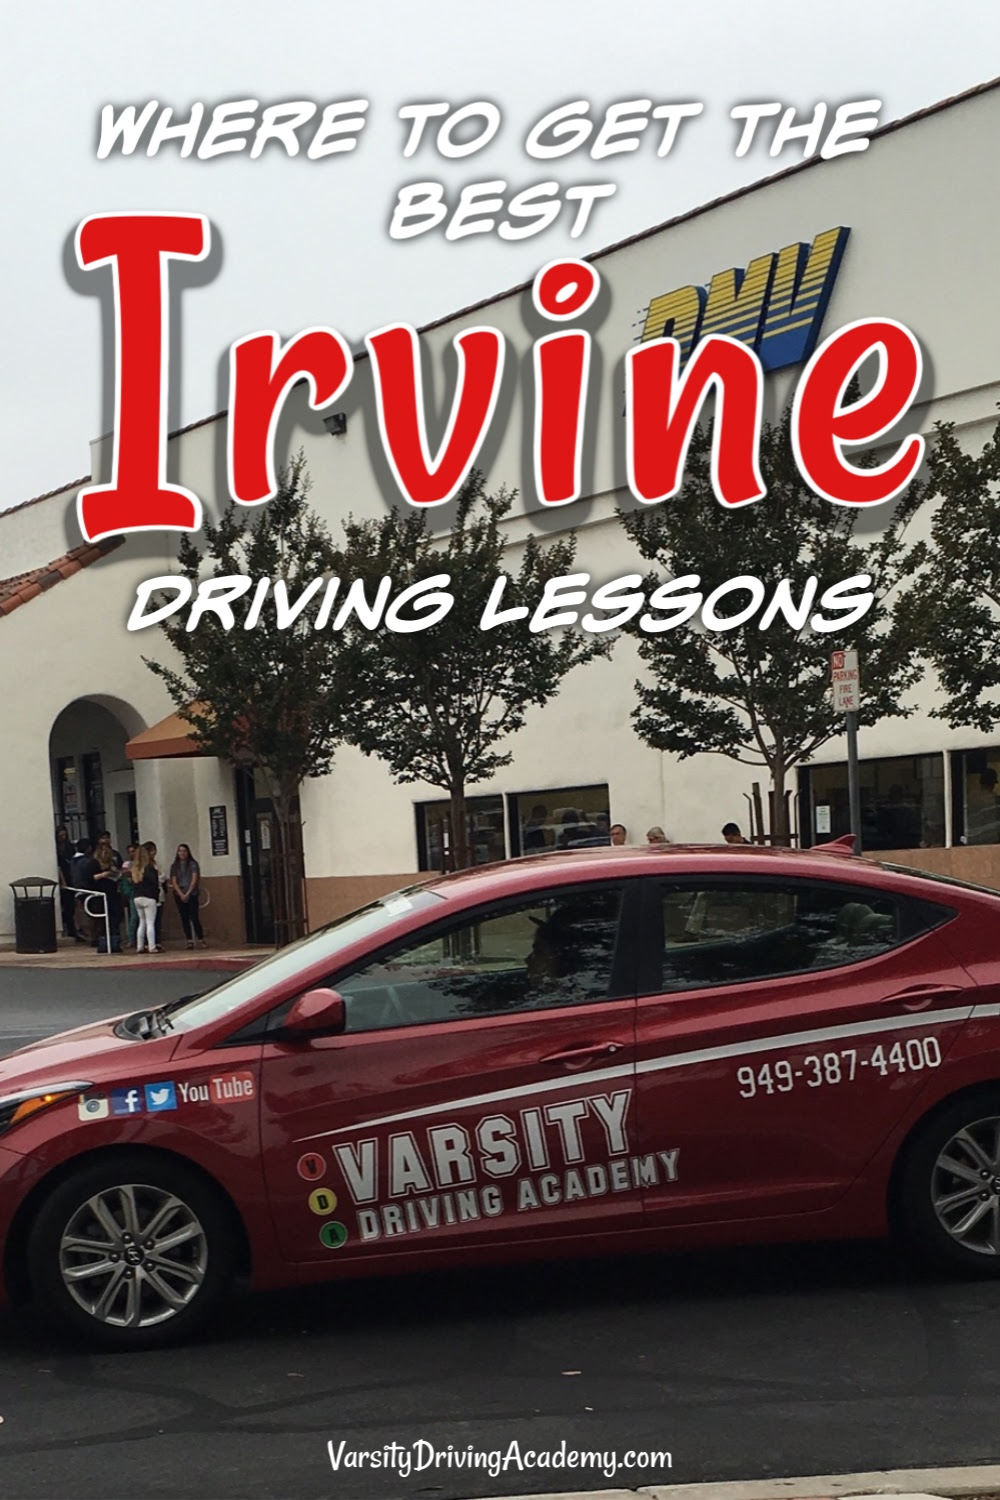 Finding out where the best driving lessons in Irvine are will help you learn to drive in Irvine with safe practices and better habits.